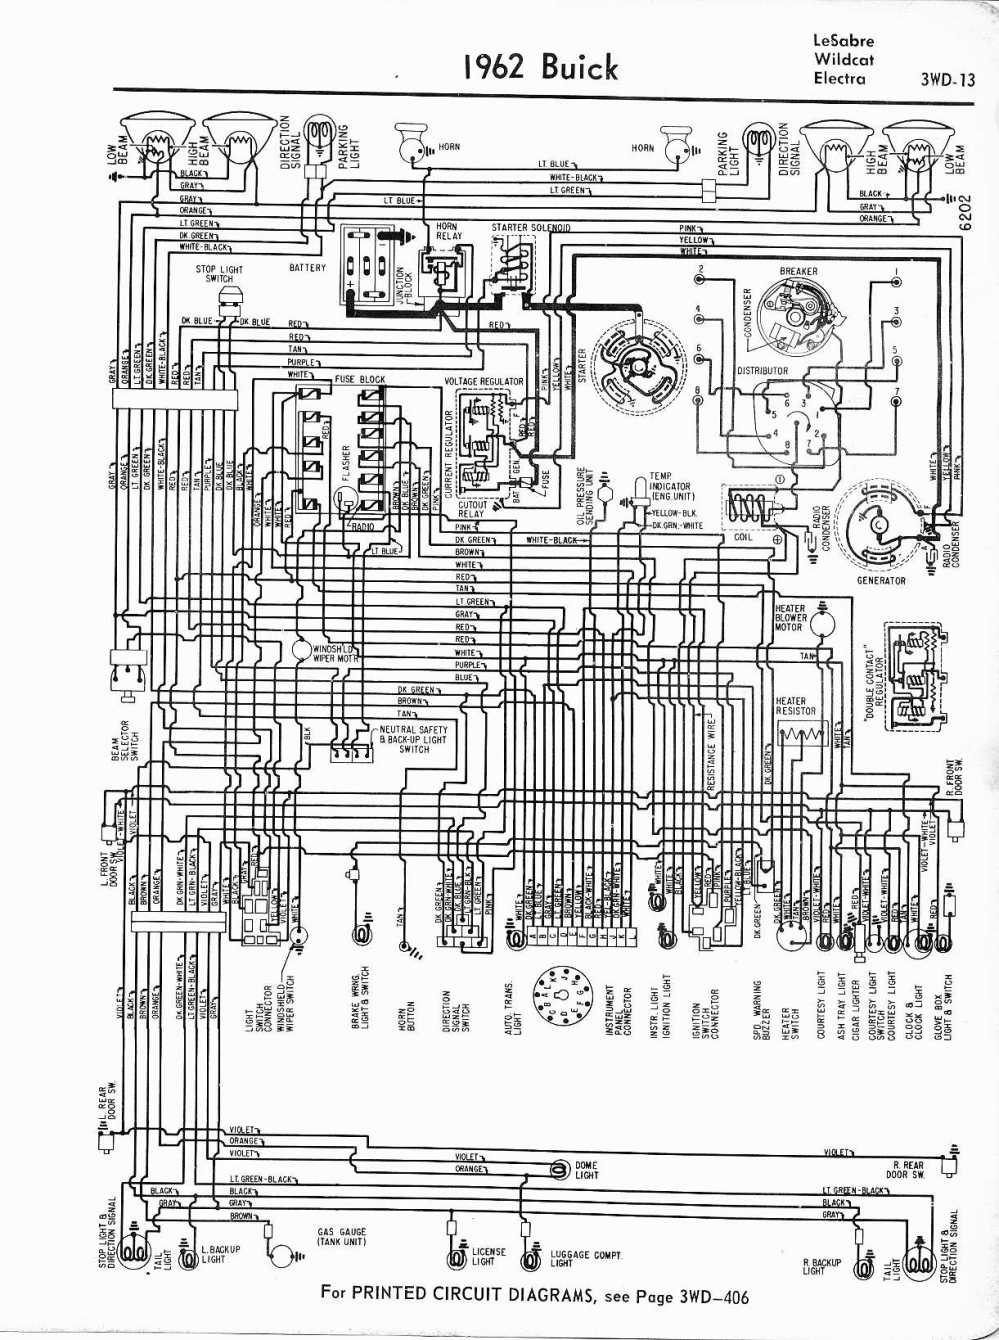 medium resolution of buick wiring diagrams 1957 1965 1969 vw wiring diagram 1969 buick turn signal wiring diagram